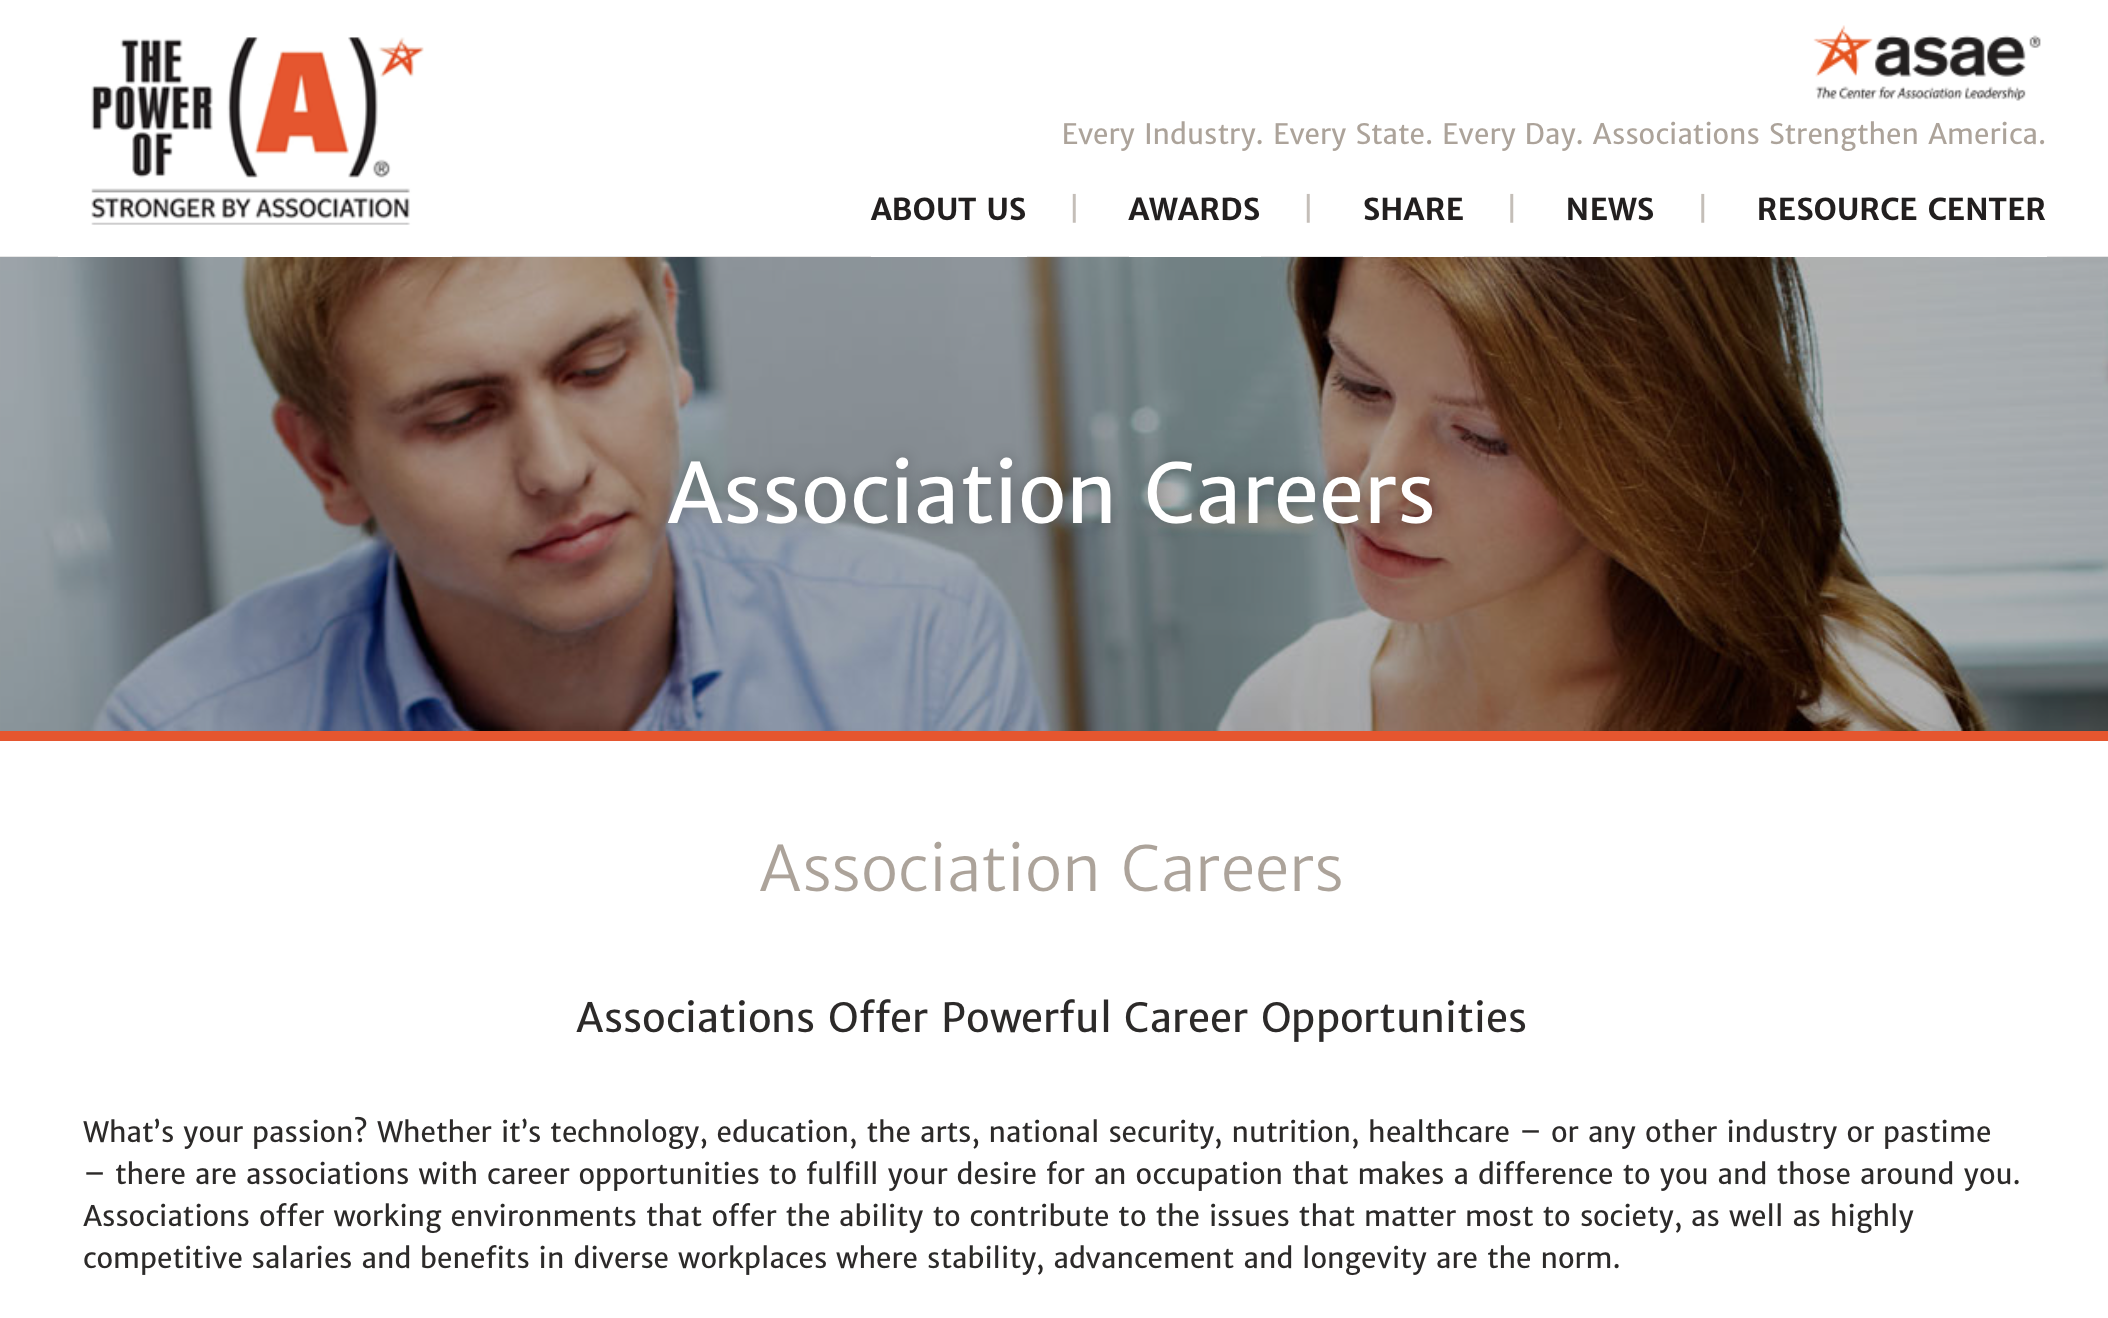 Associations Careers Page